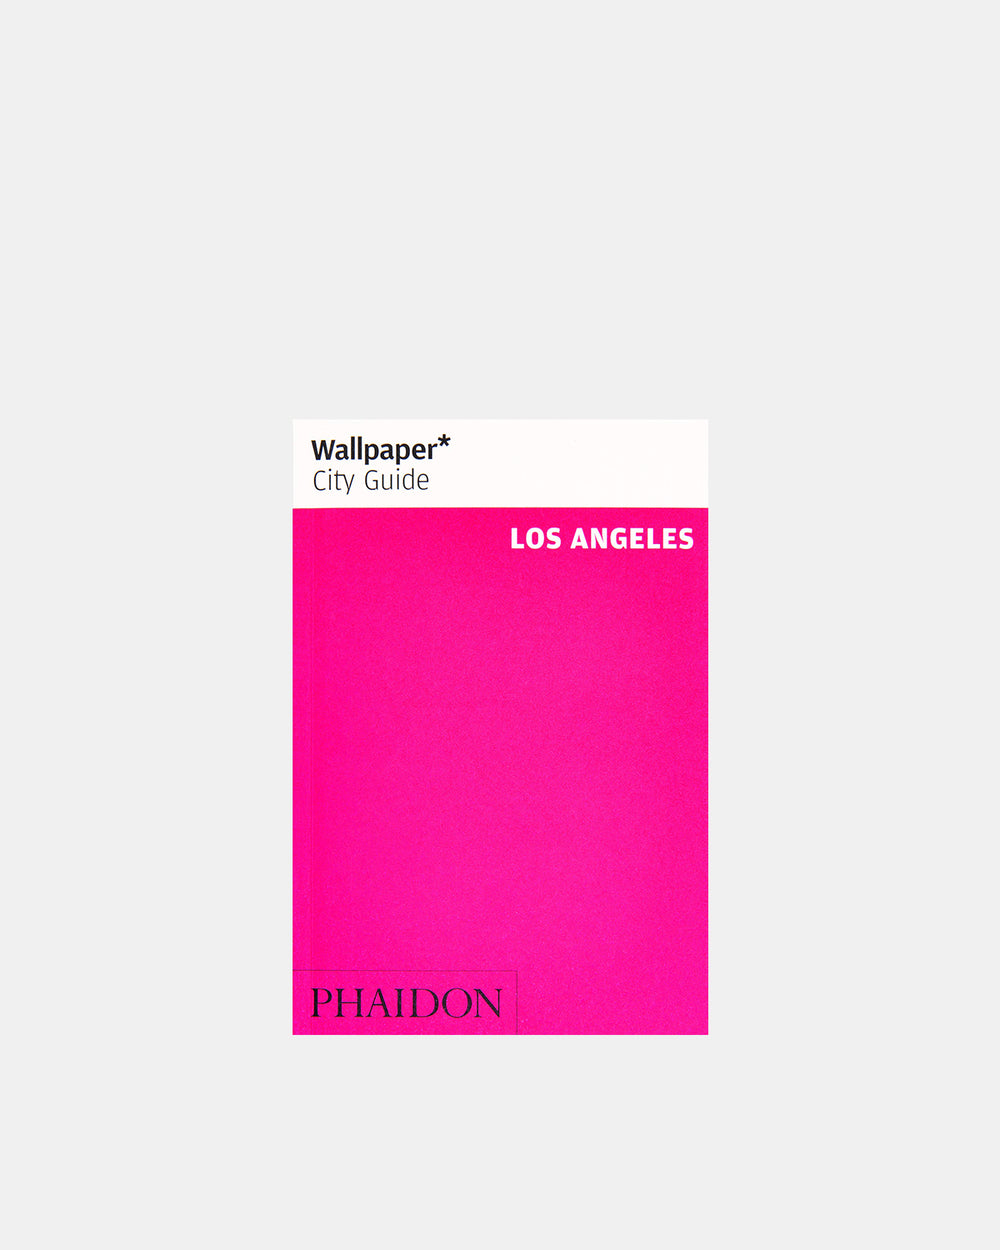 Wallpaper* - City Guide Los Angeles